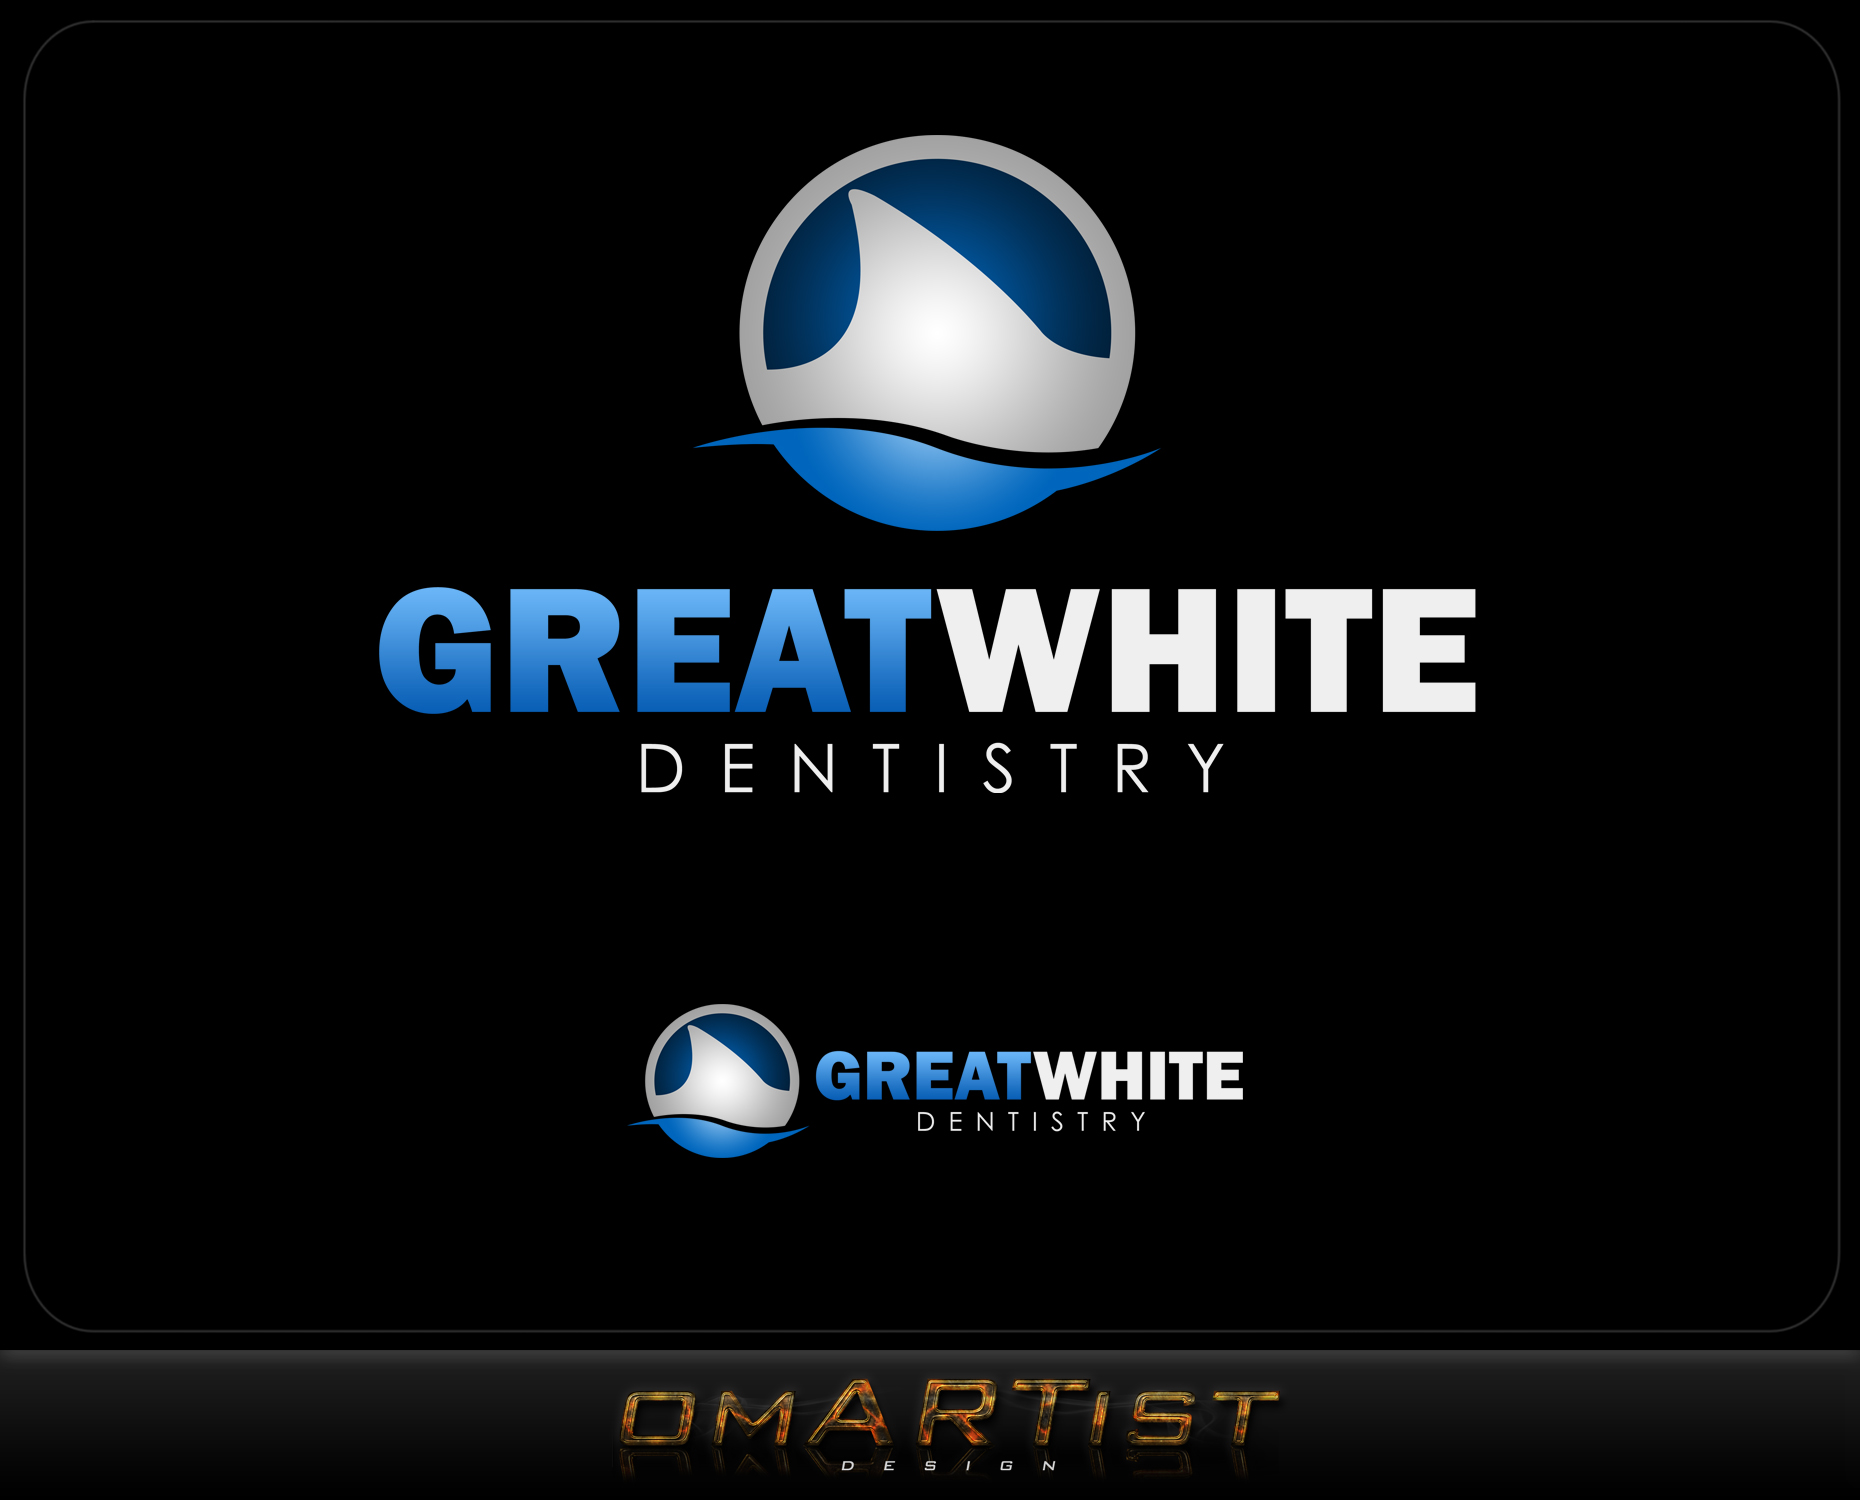 Logo Design by omARTist - Entry No. 116 in the Logo Design Contest Logo Design for Great White Dentistry.